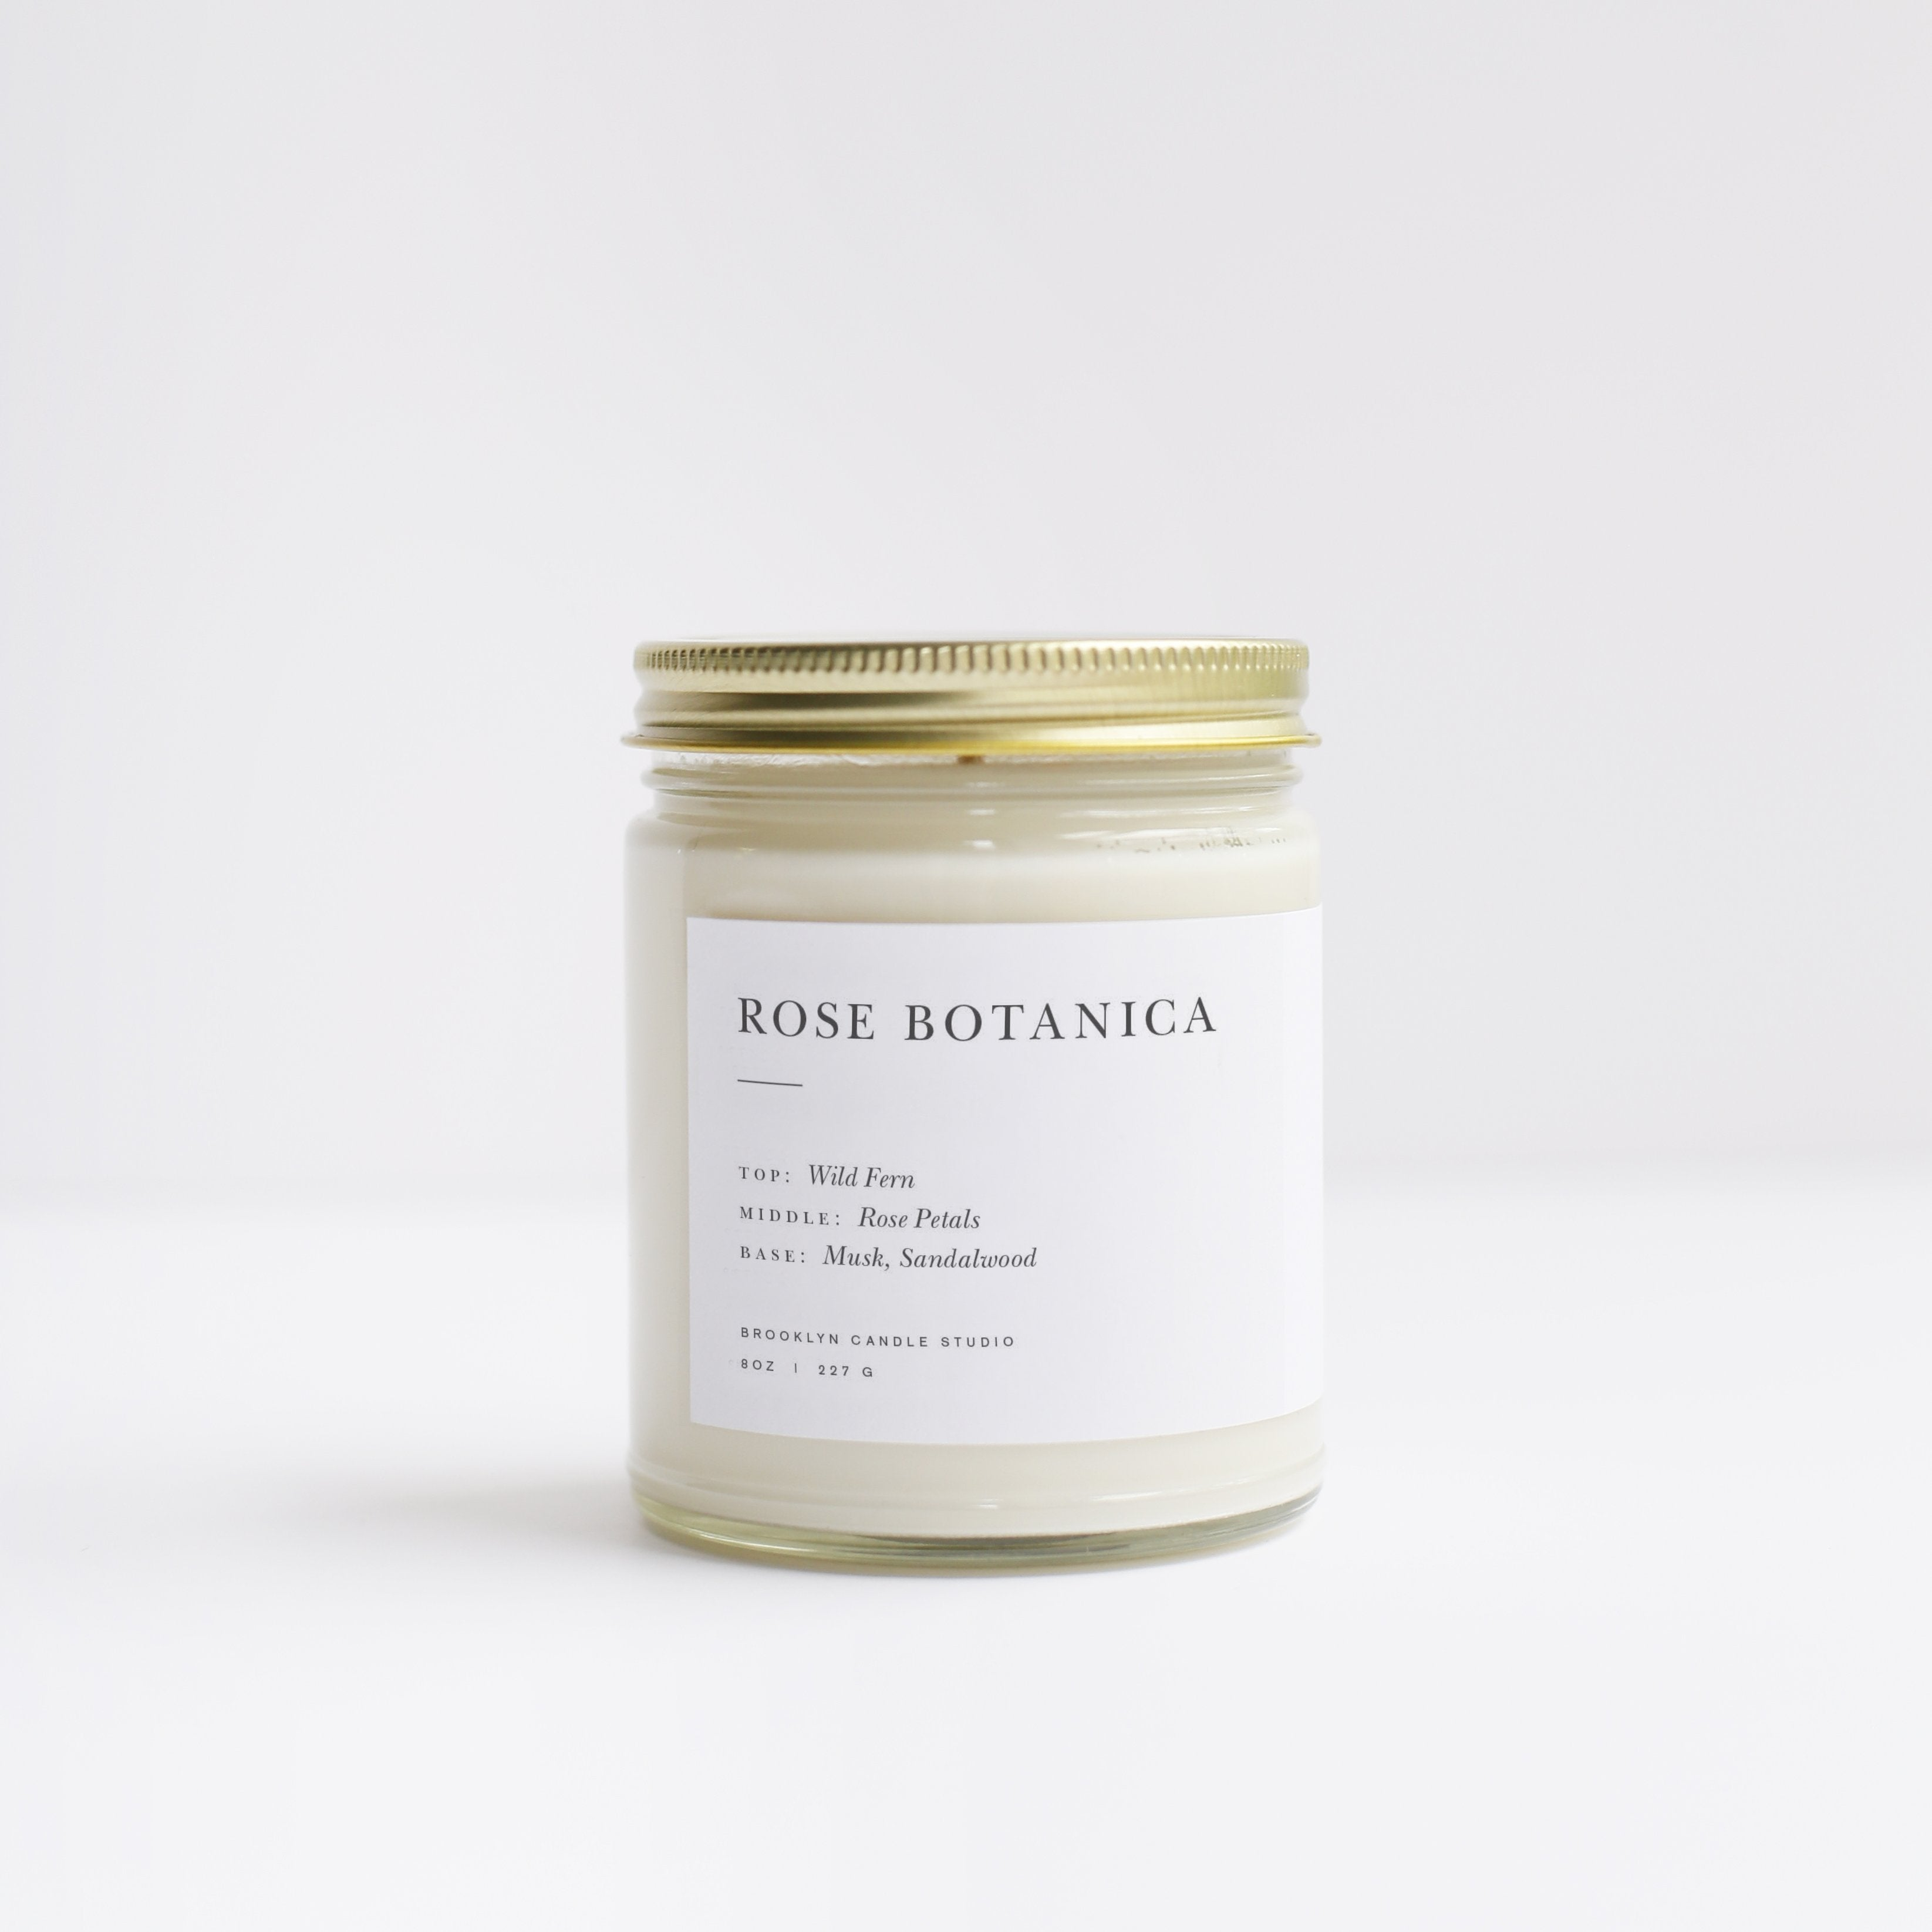 Brooklyn Candle Studio - Rose Botanica Minimalist Candle